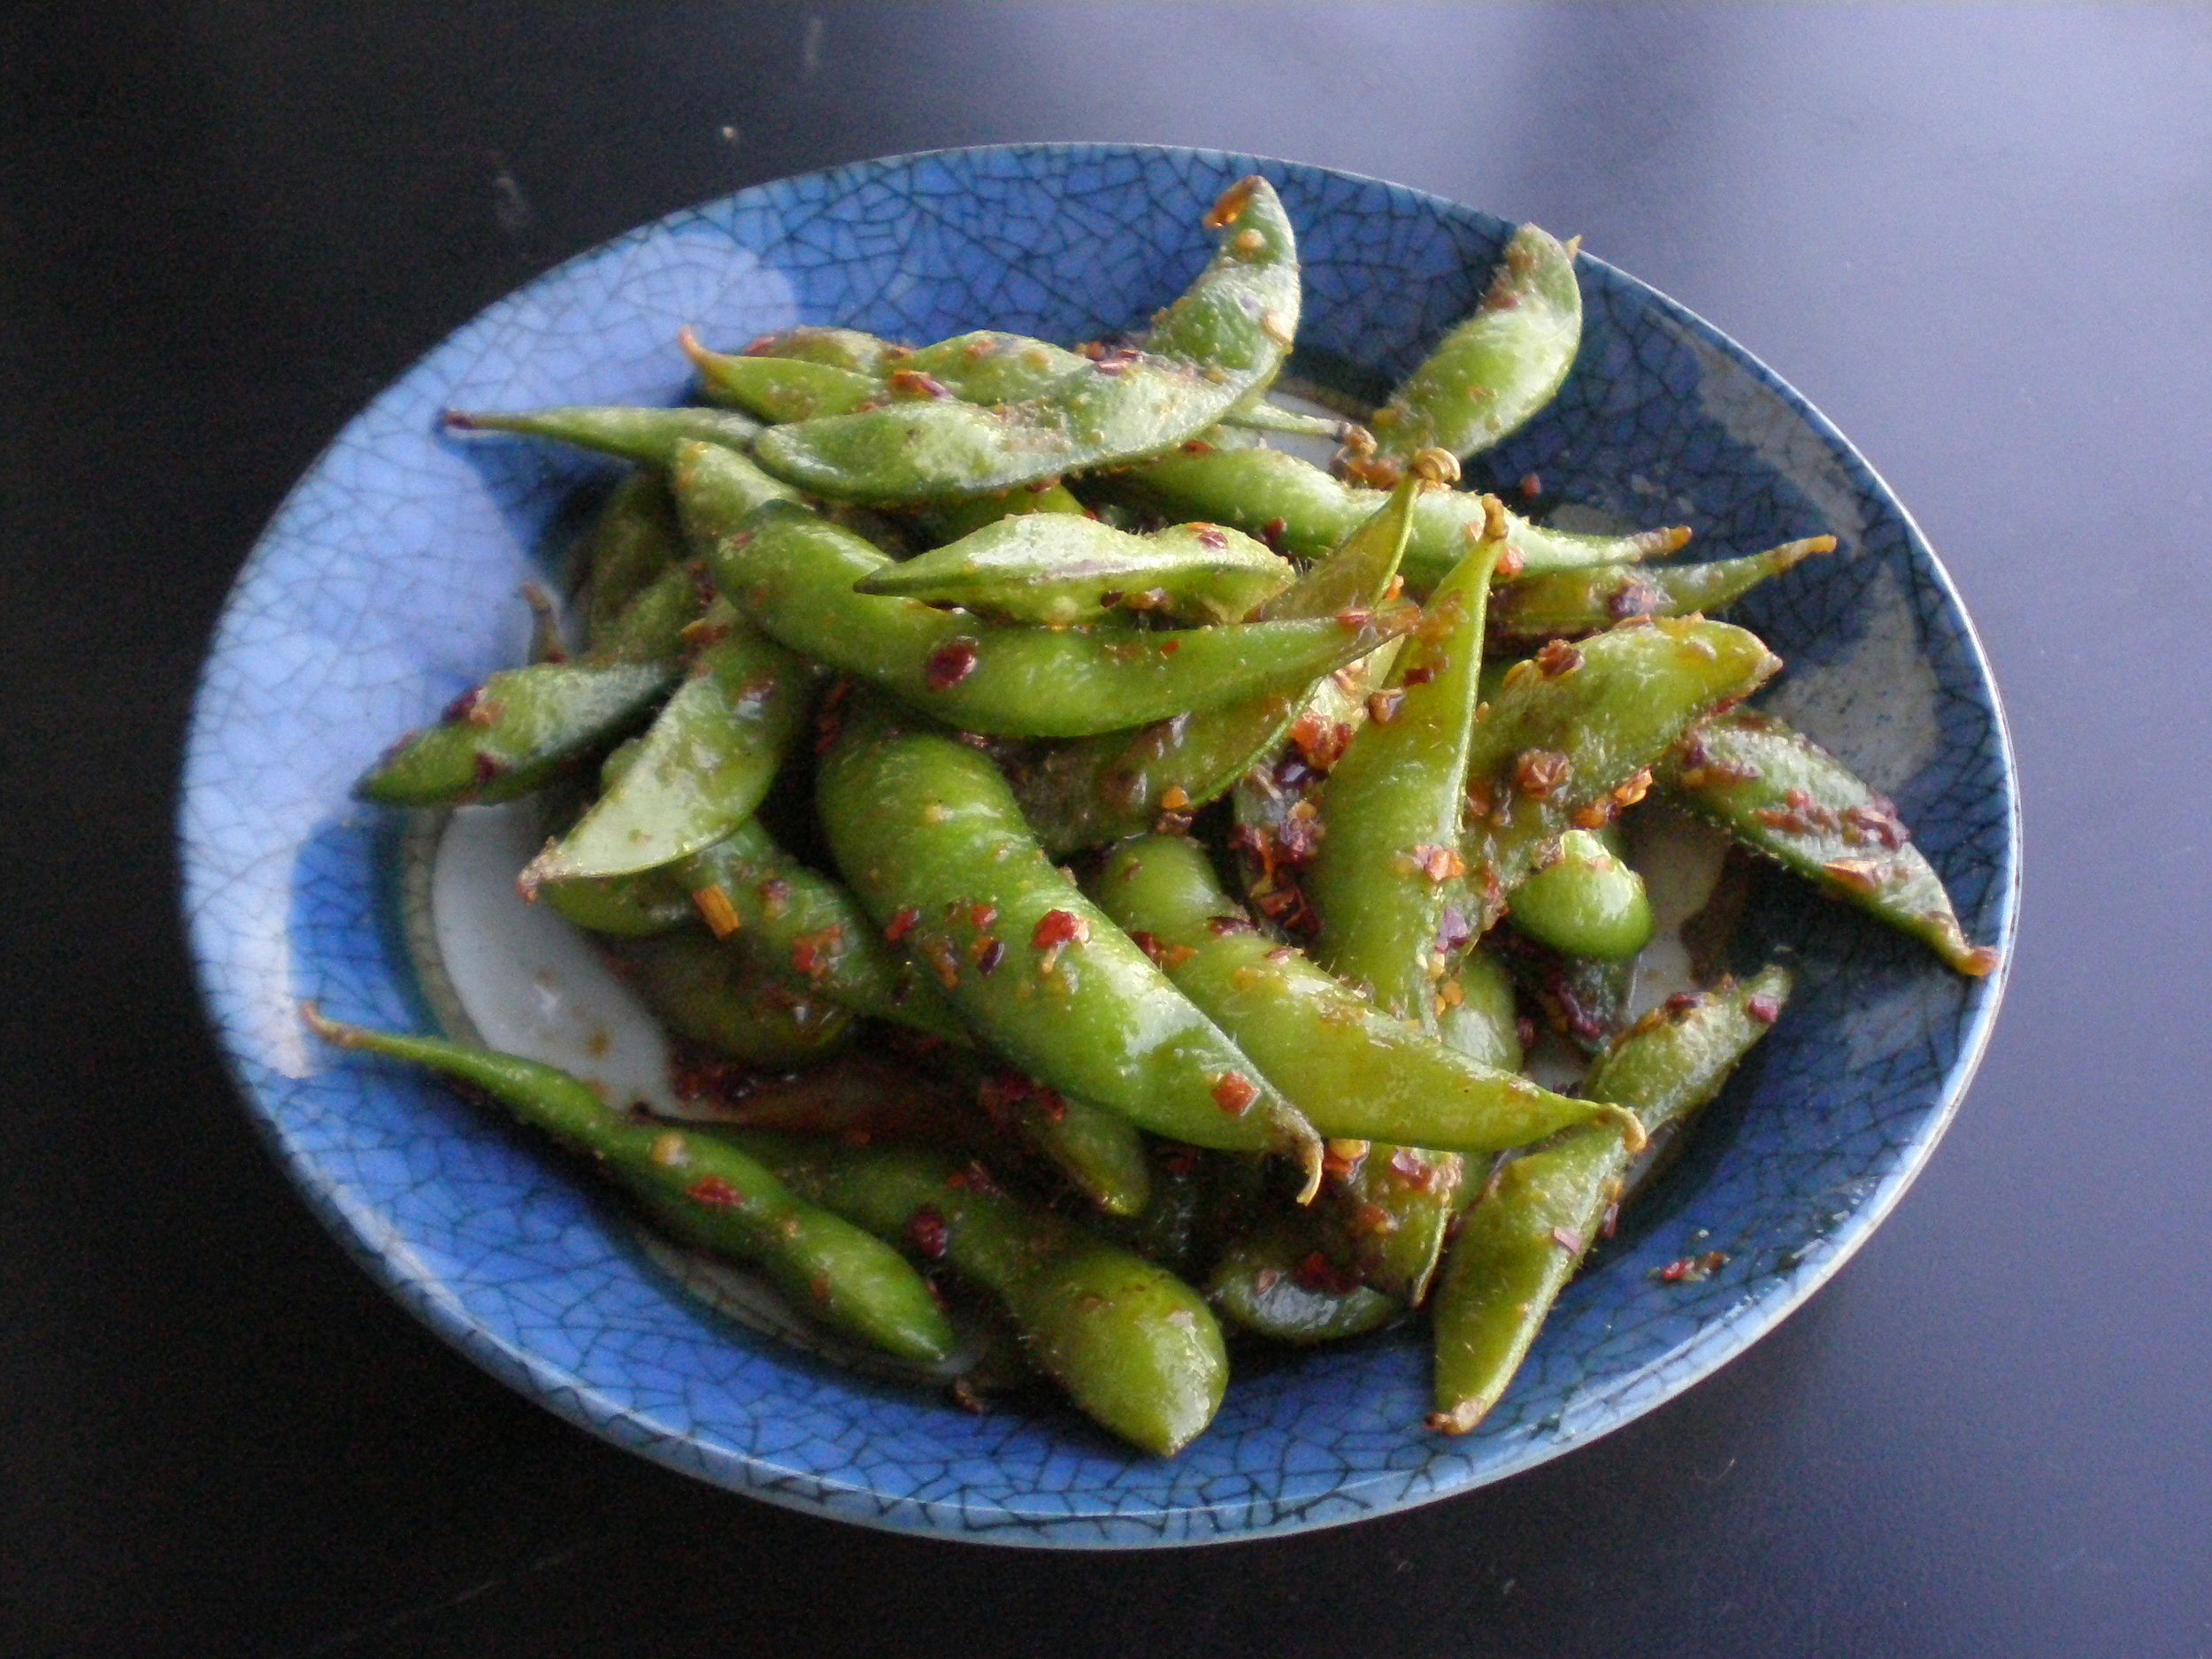 Edamame with Chile Flakes